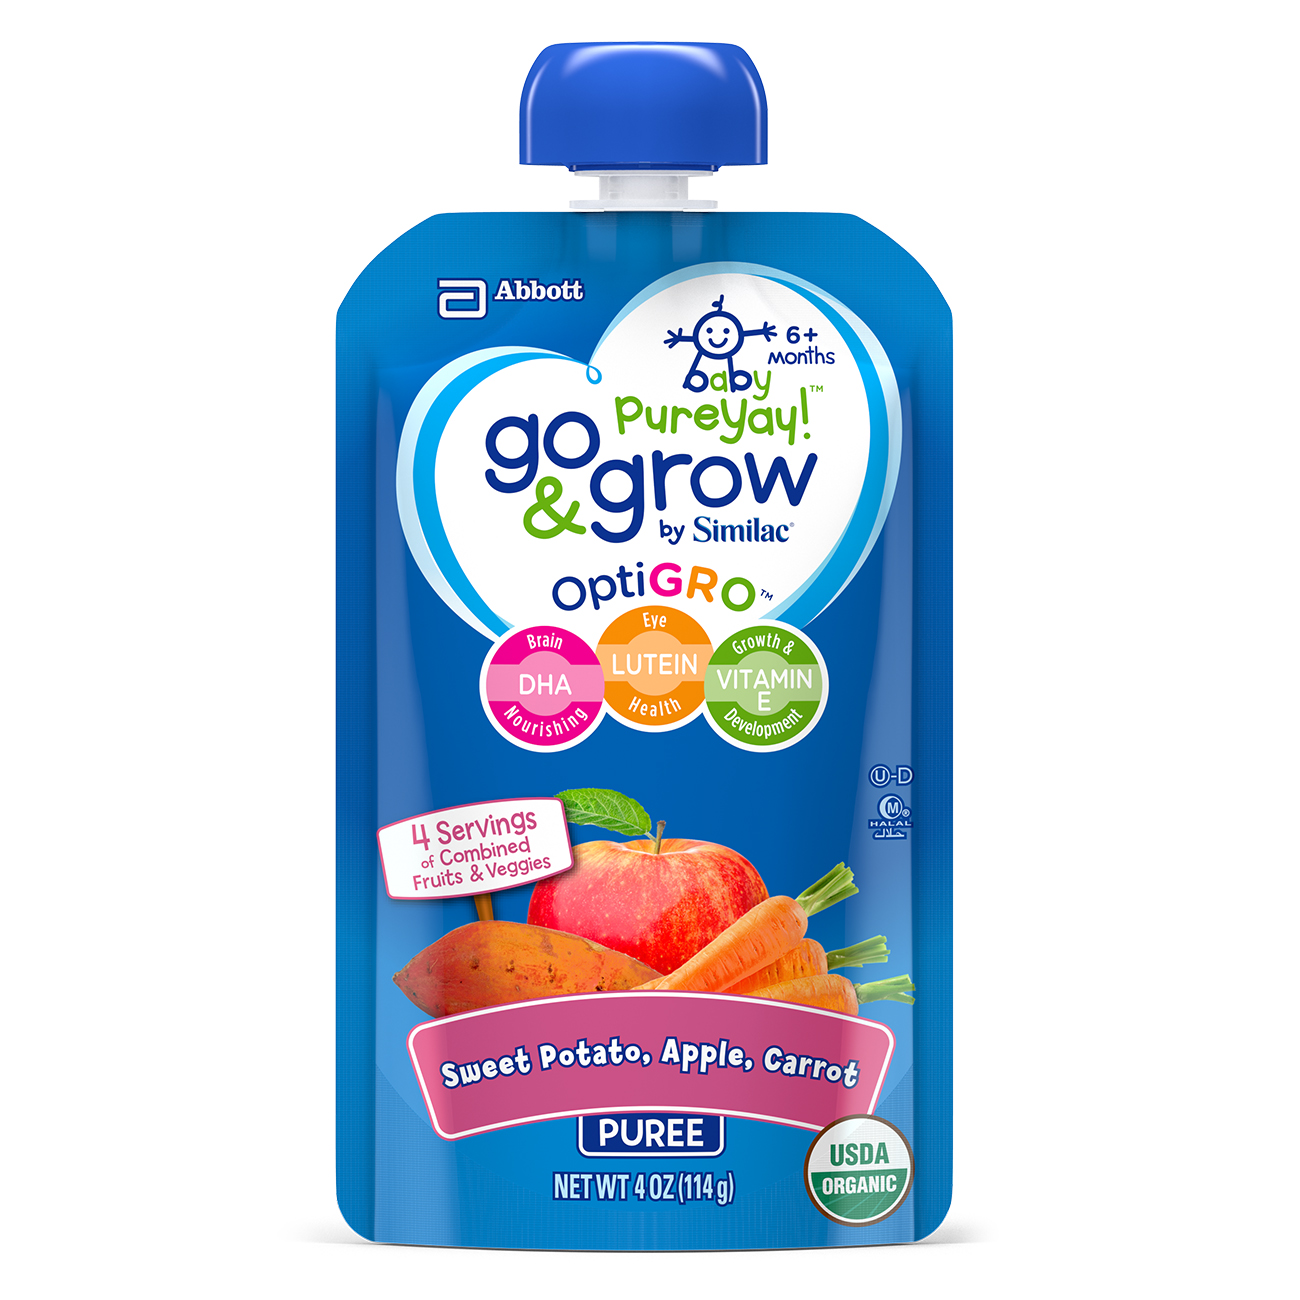 Go & Grow by Similac Pouches with OptiGRO, Sweet Potato, Apple, Carrot Puree, For 6+ Months, Organic Baby Food, 4 ounces, Pack of 6